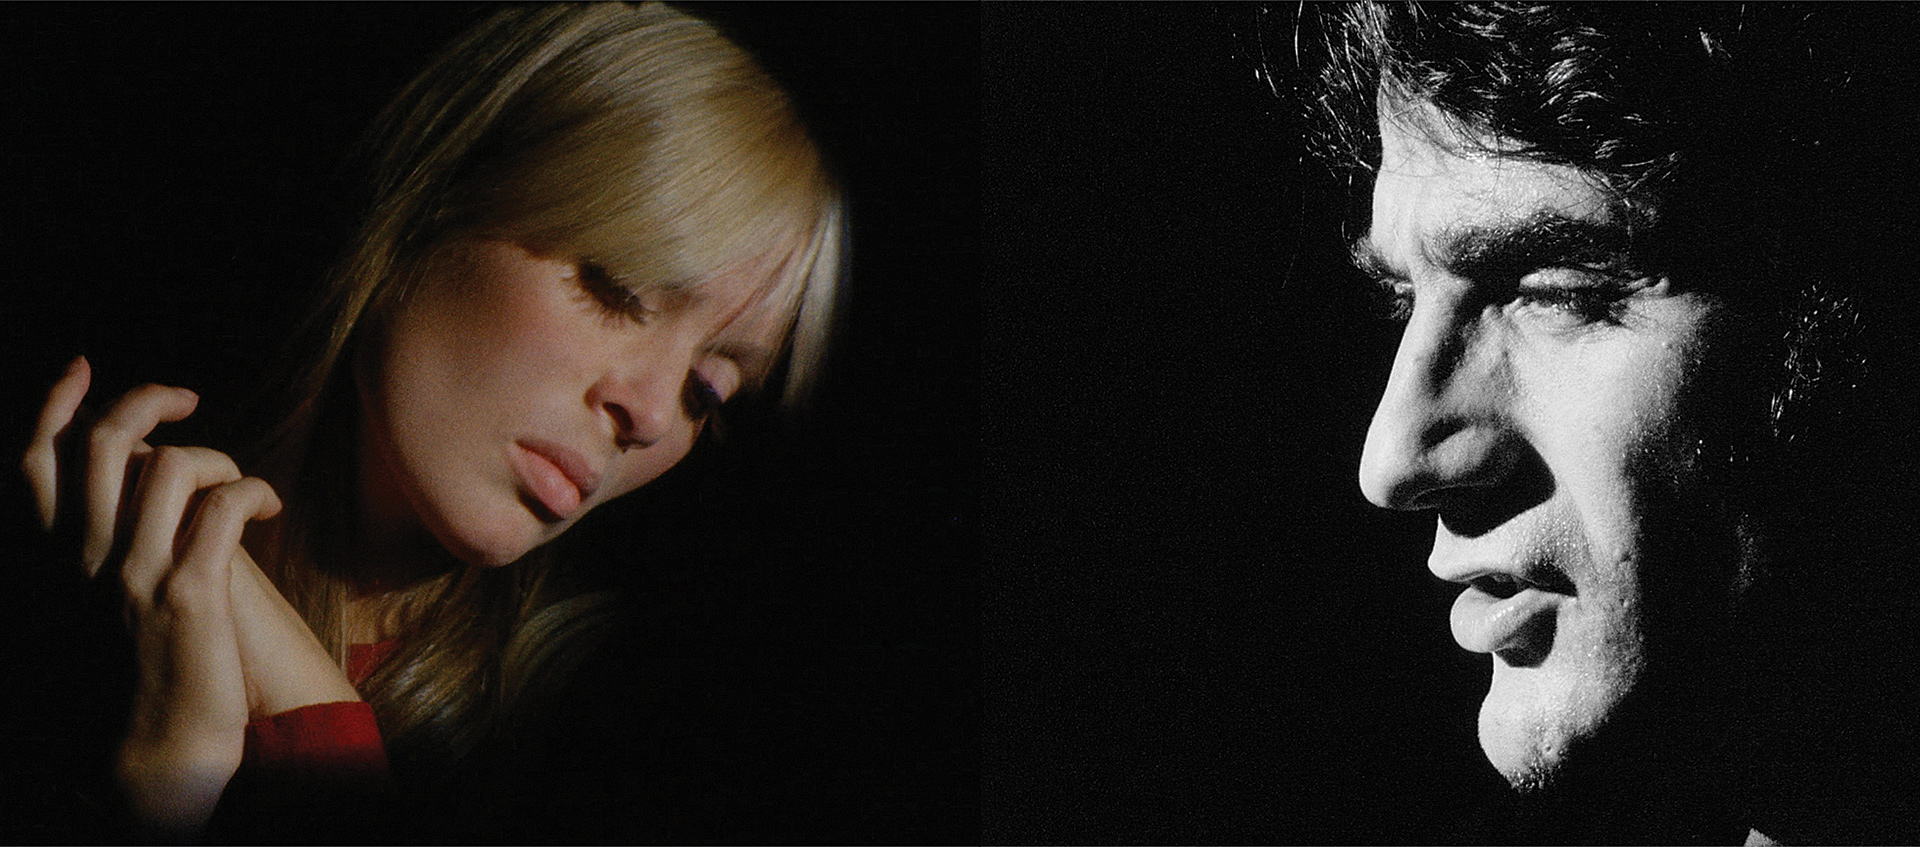 Nico and Ondine in a scene from Andy Warhol's double screen artwork The Chelsea Girls